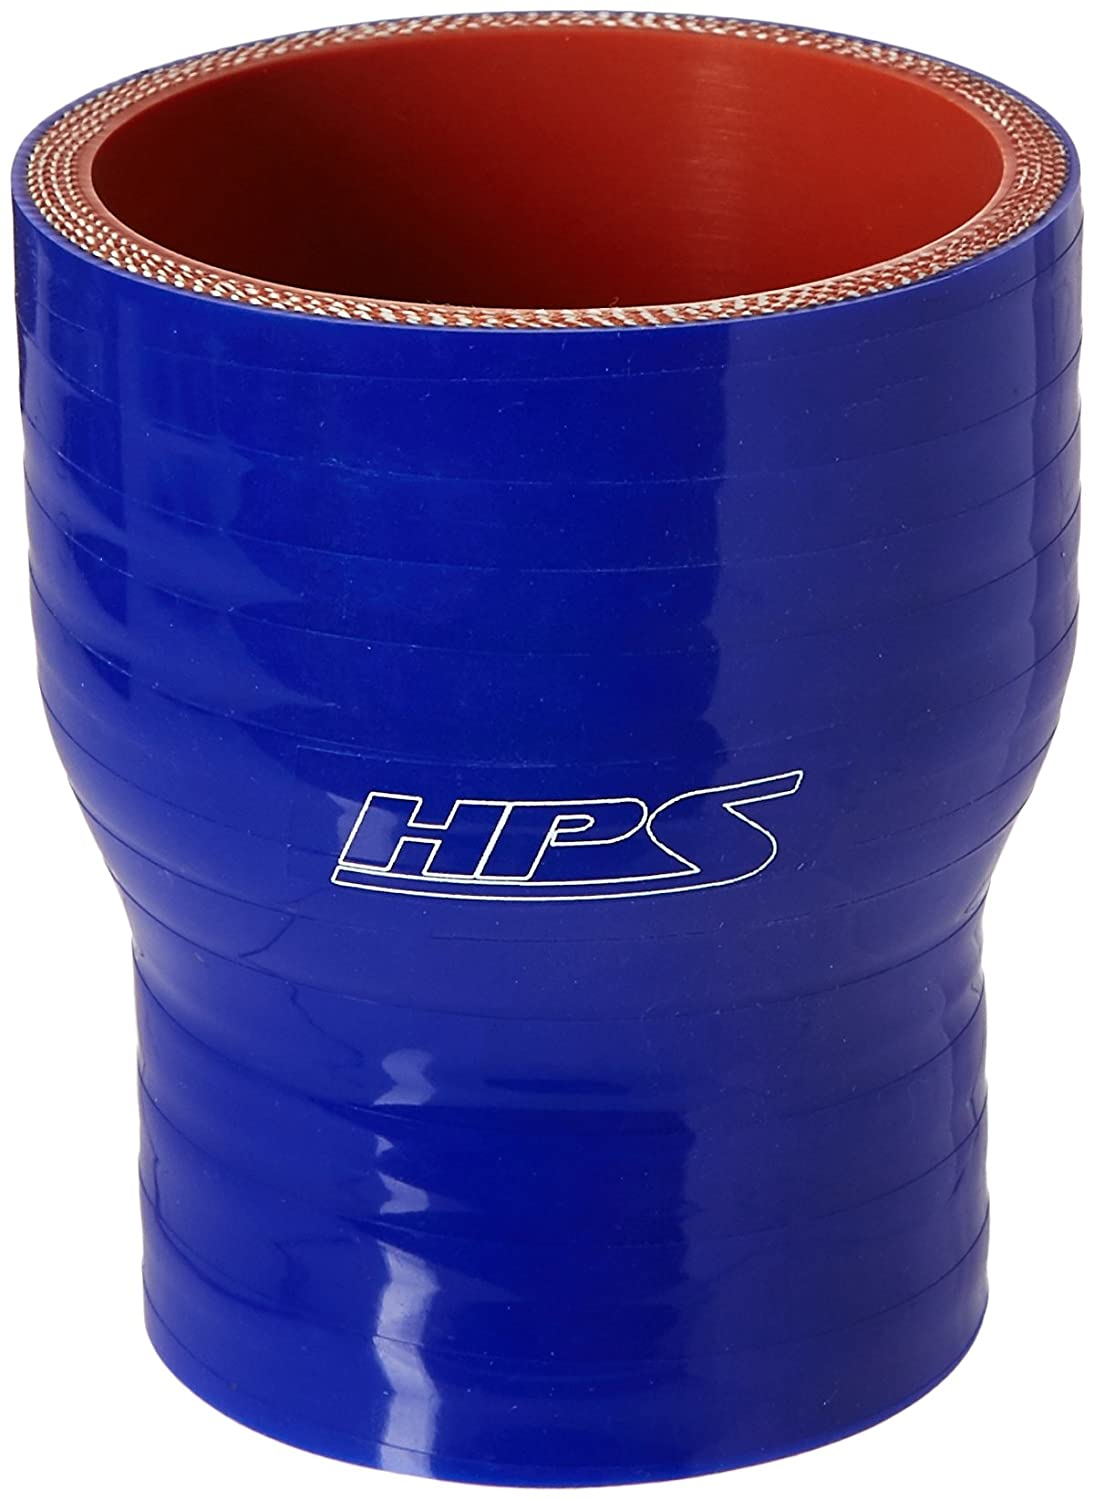 HPS HTSR-175-225-BLUE Silicone High Temperature 4-ply Reinforced Reducer Coupler Hose 80 PSI Maximum Pressure 3 Length Blue 1-3//4  2-1//4 ID